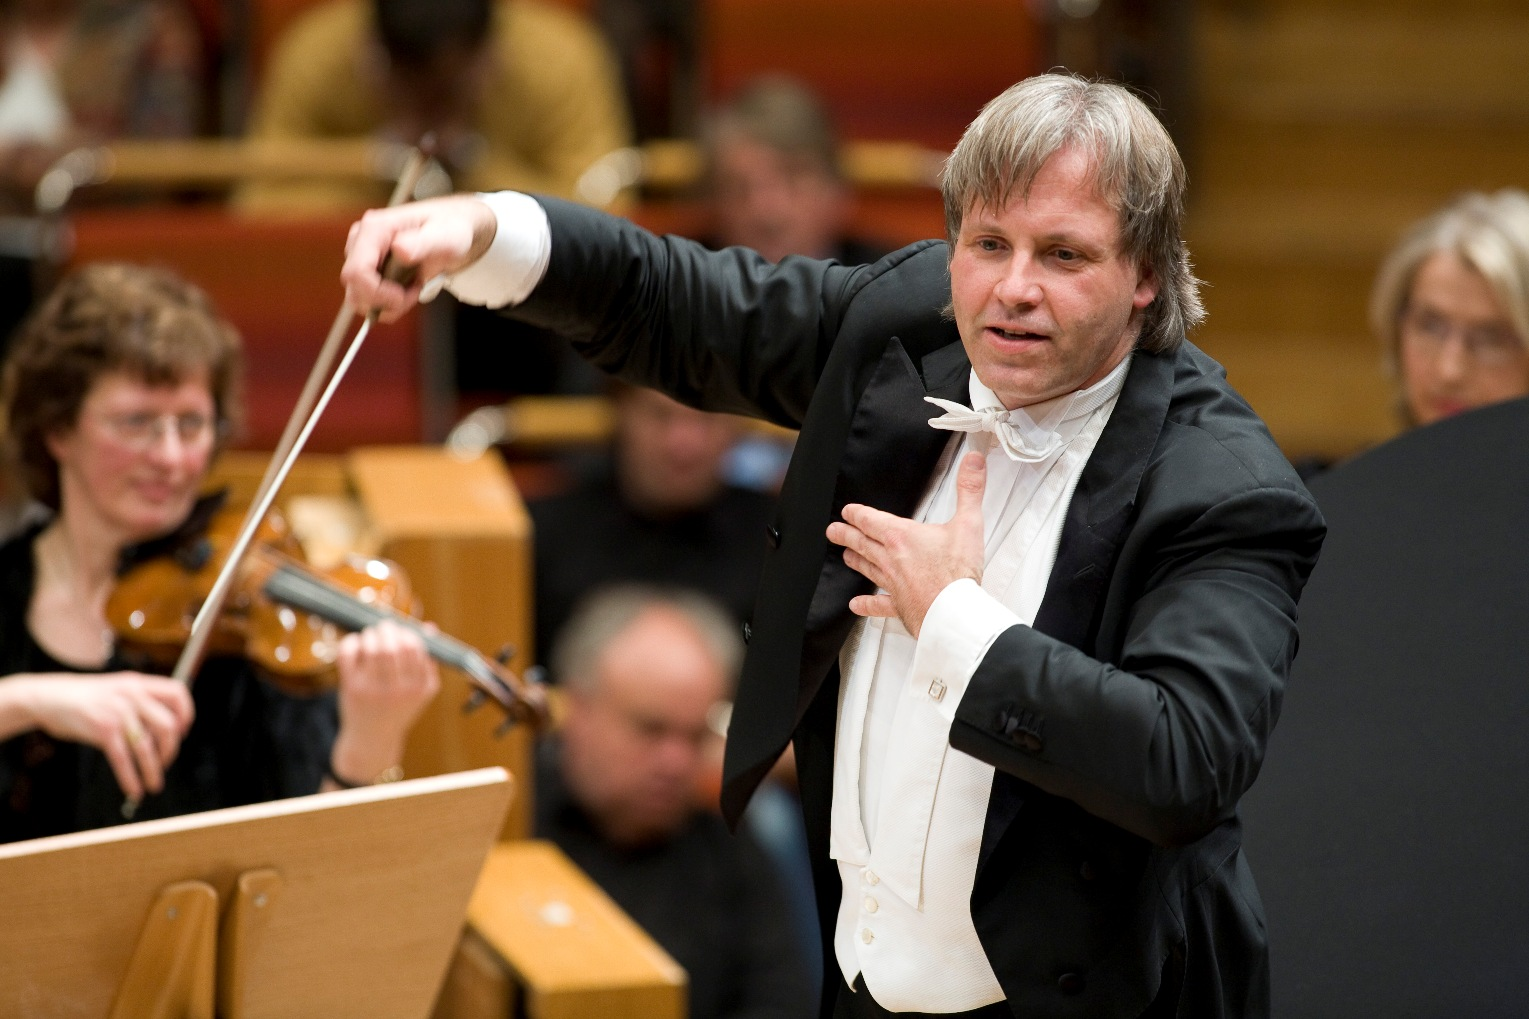 Stenz conducting the Halle